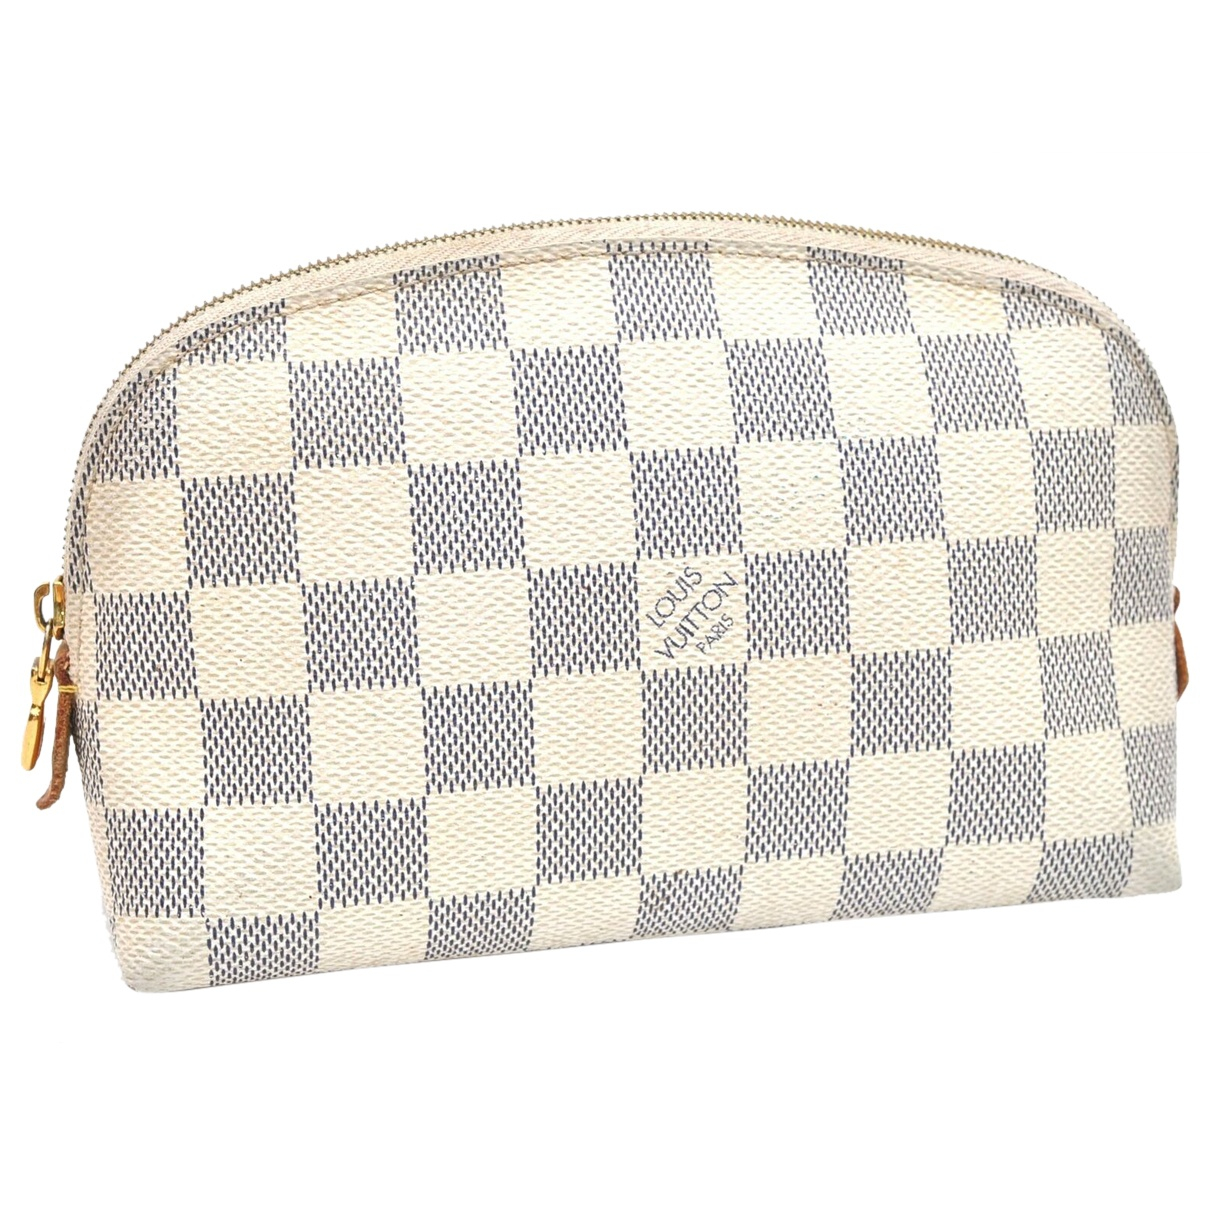 Louis Vuitton \N Clutch in  Weiss Leinen